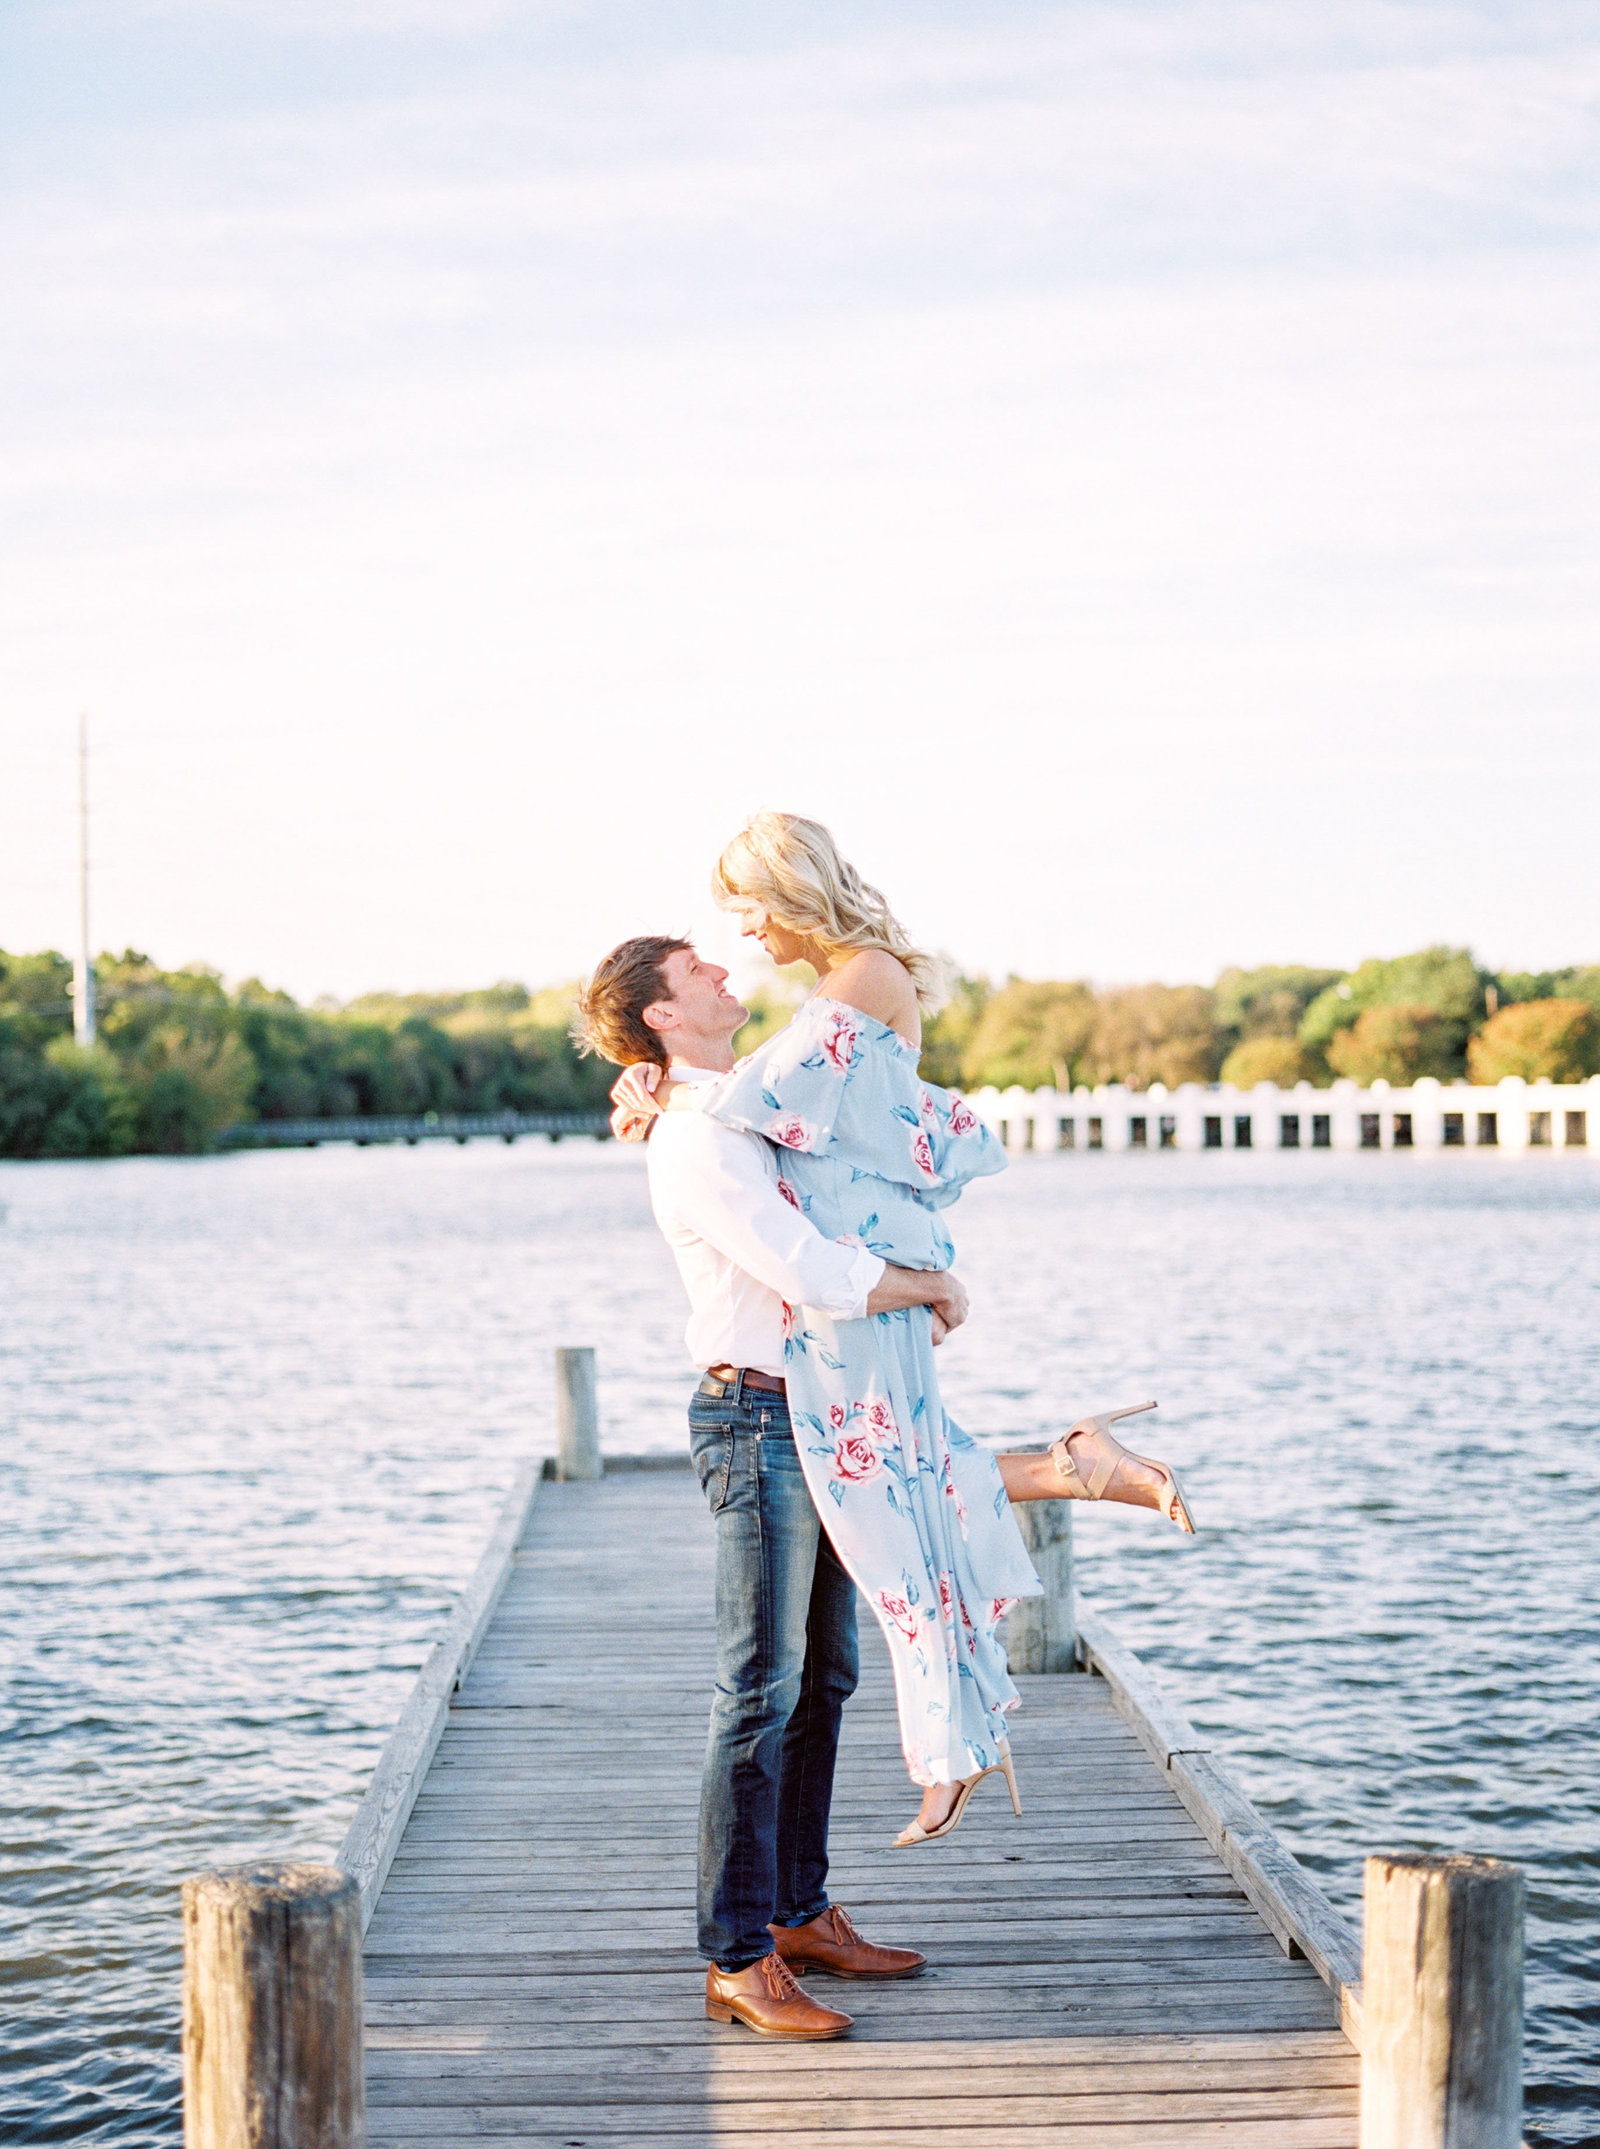 Dallas engagement photographer_Chelsea Q White-89